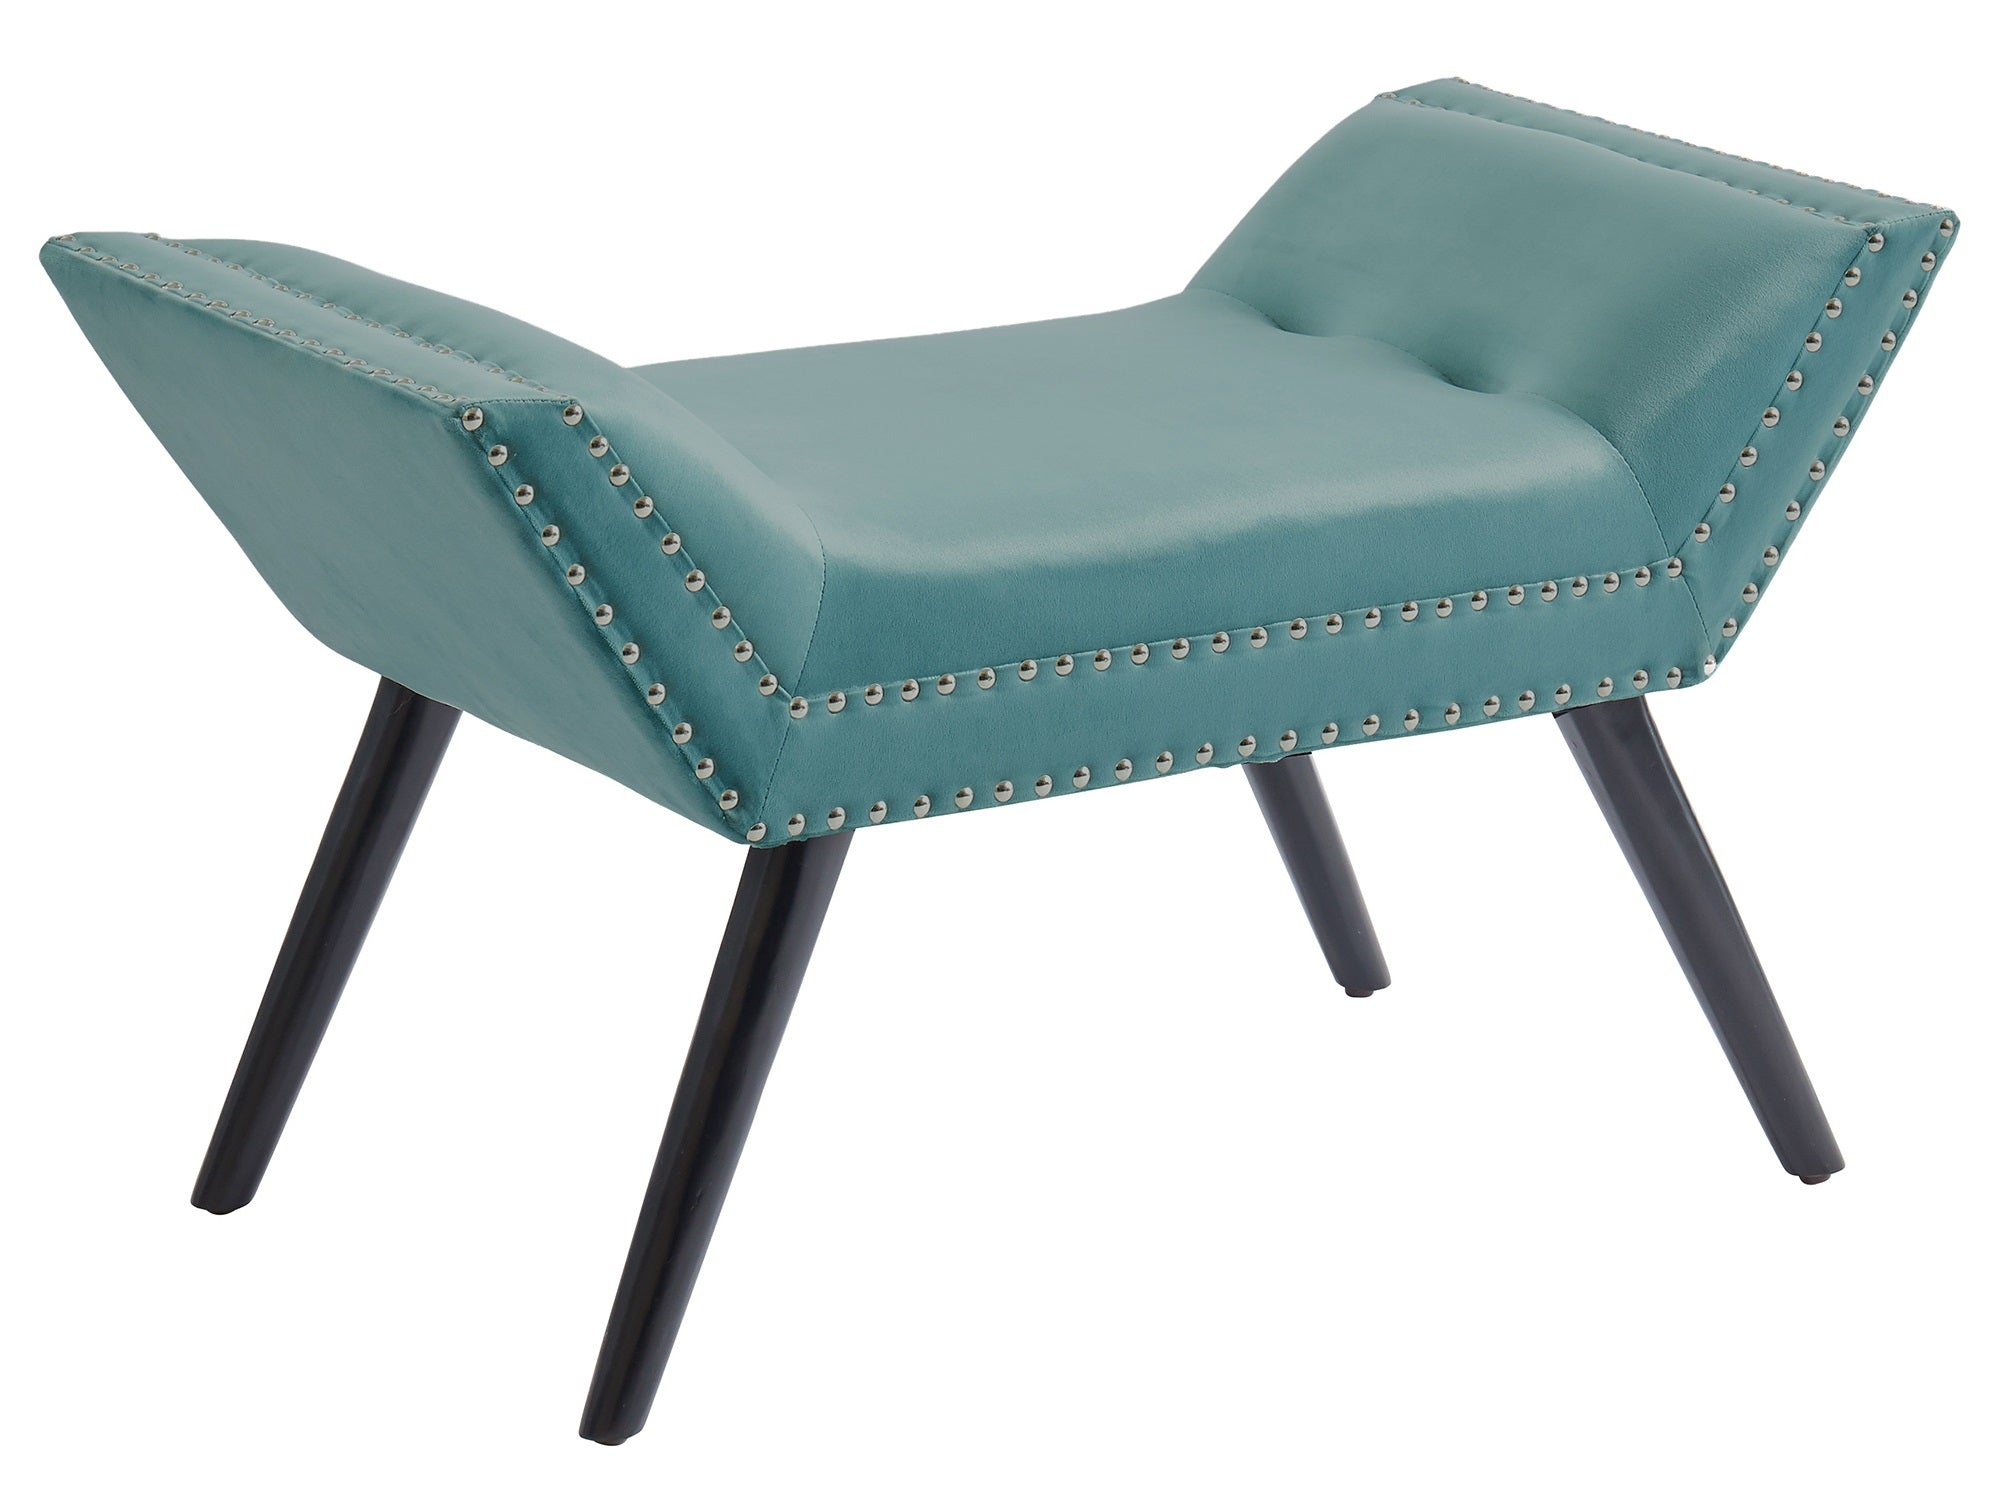 Lana Bench - Teal